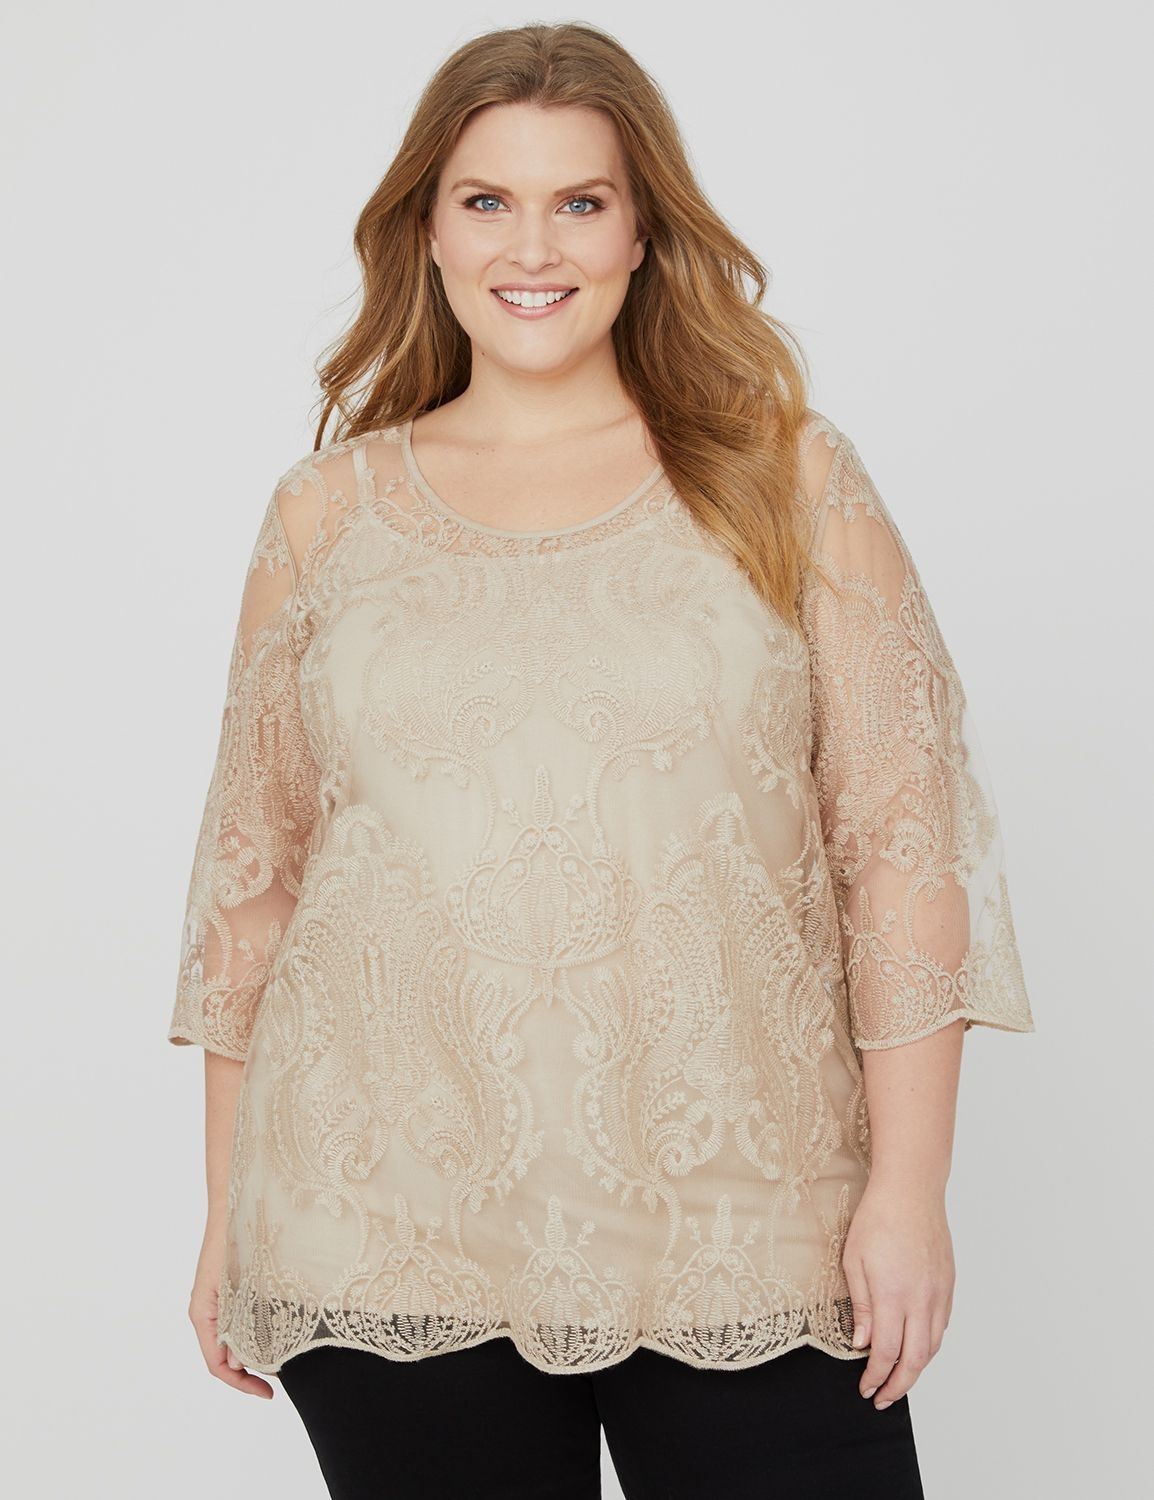 Soft Afterglow Top 1091394 Nuance Mesh Embroidered Tun MP-300103669